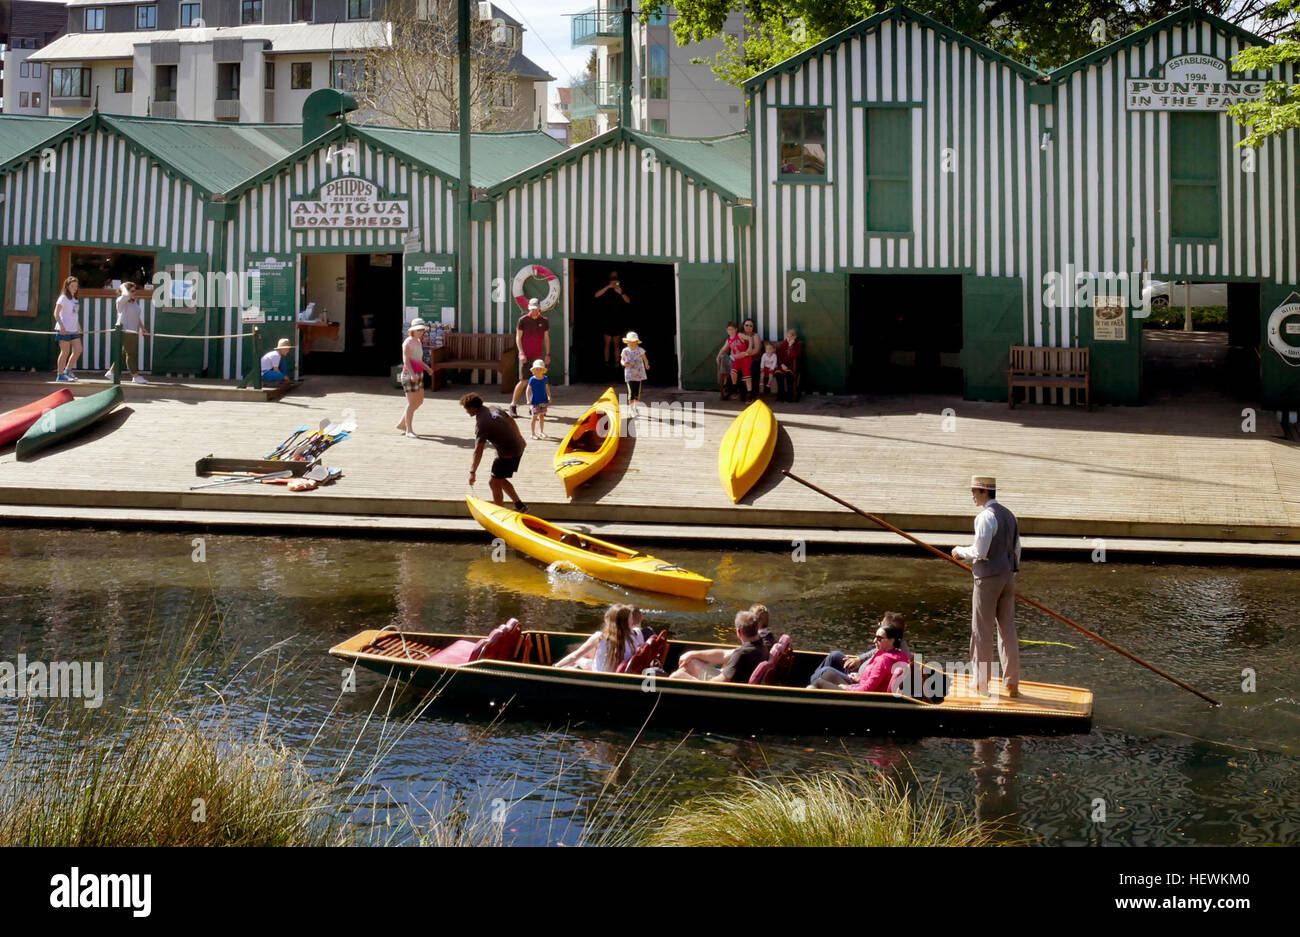 Come and experience a slice of Christchurch's history at the 125-year-old Antigua Boat Sheds and Café on - Stock Image